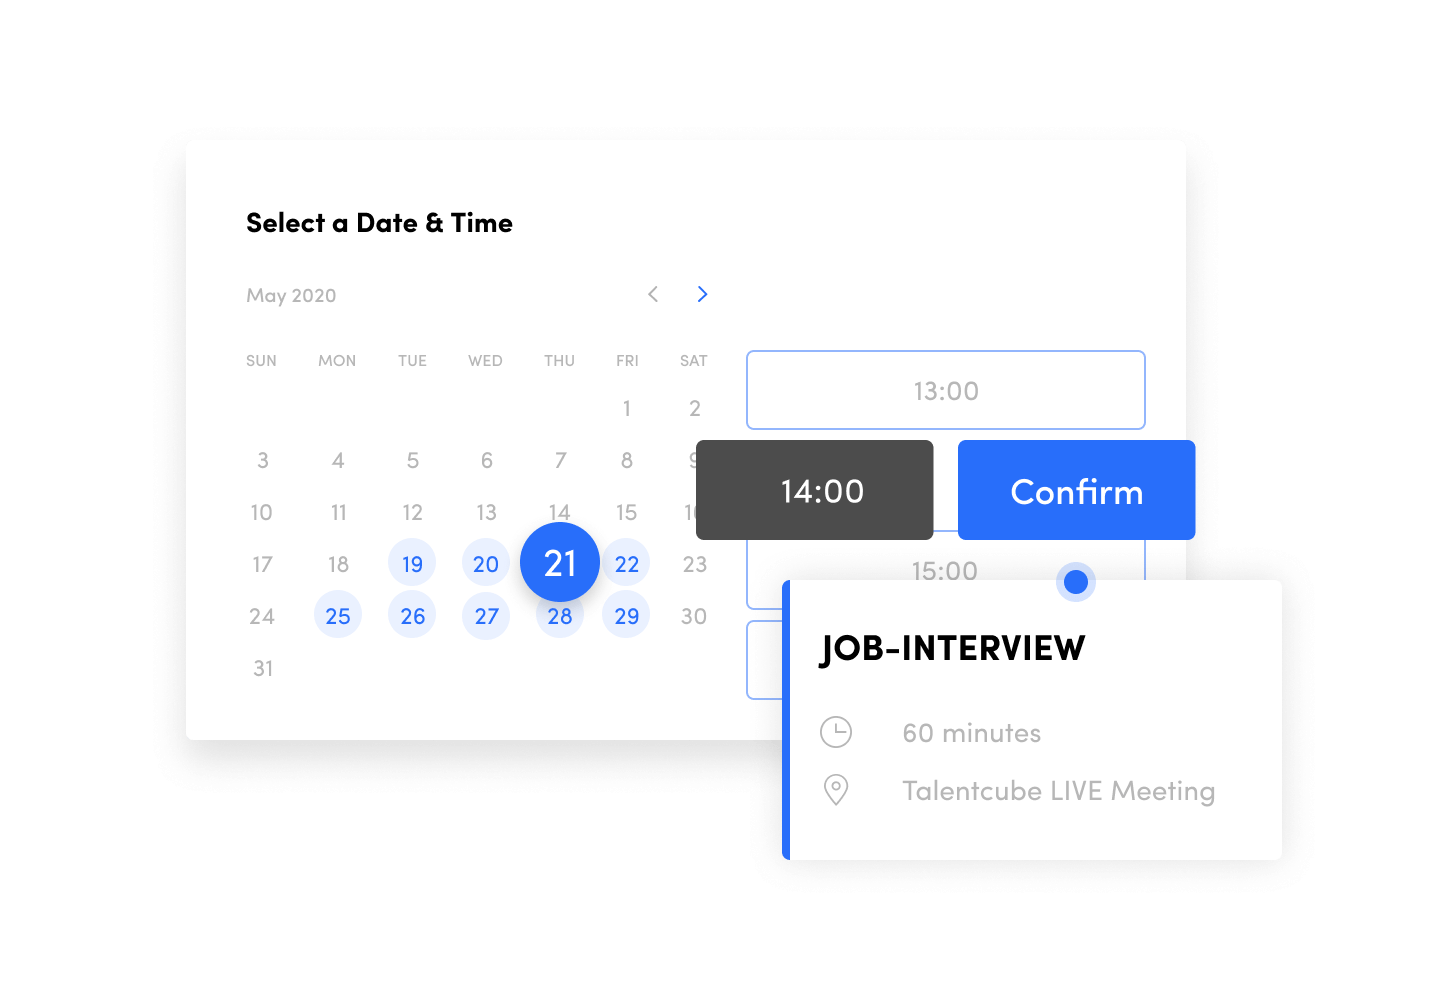 Talentcube enables automatic scheduling of live-interview appointments